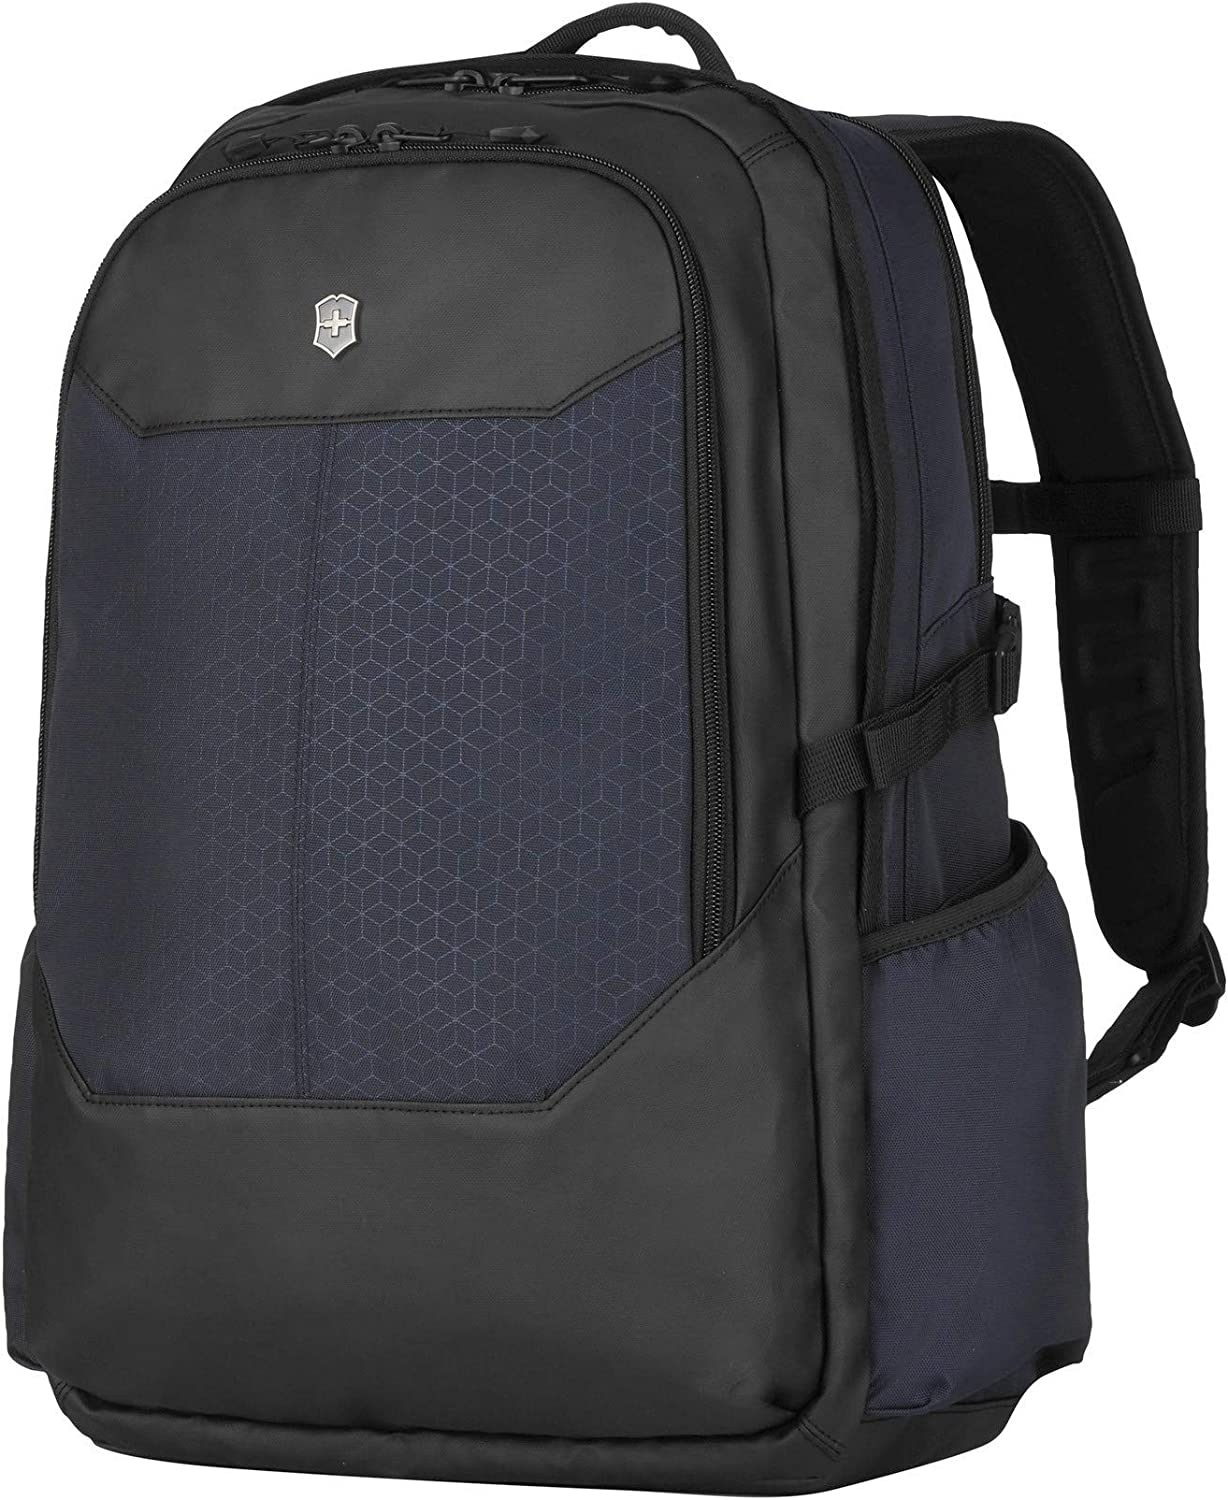 Victorinox Altmont Original Deluxe Laptop Backpack